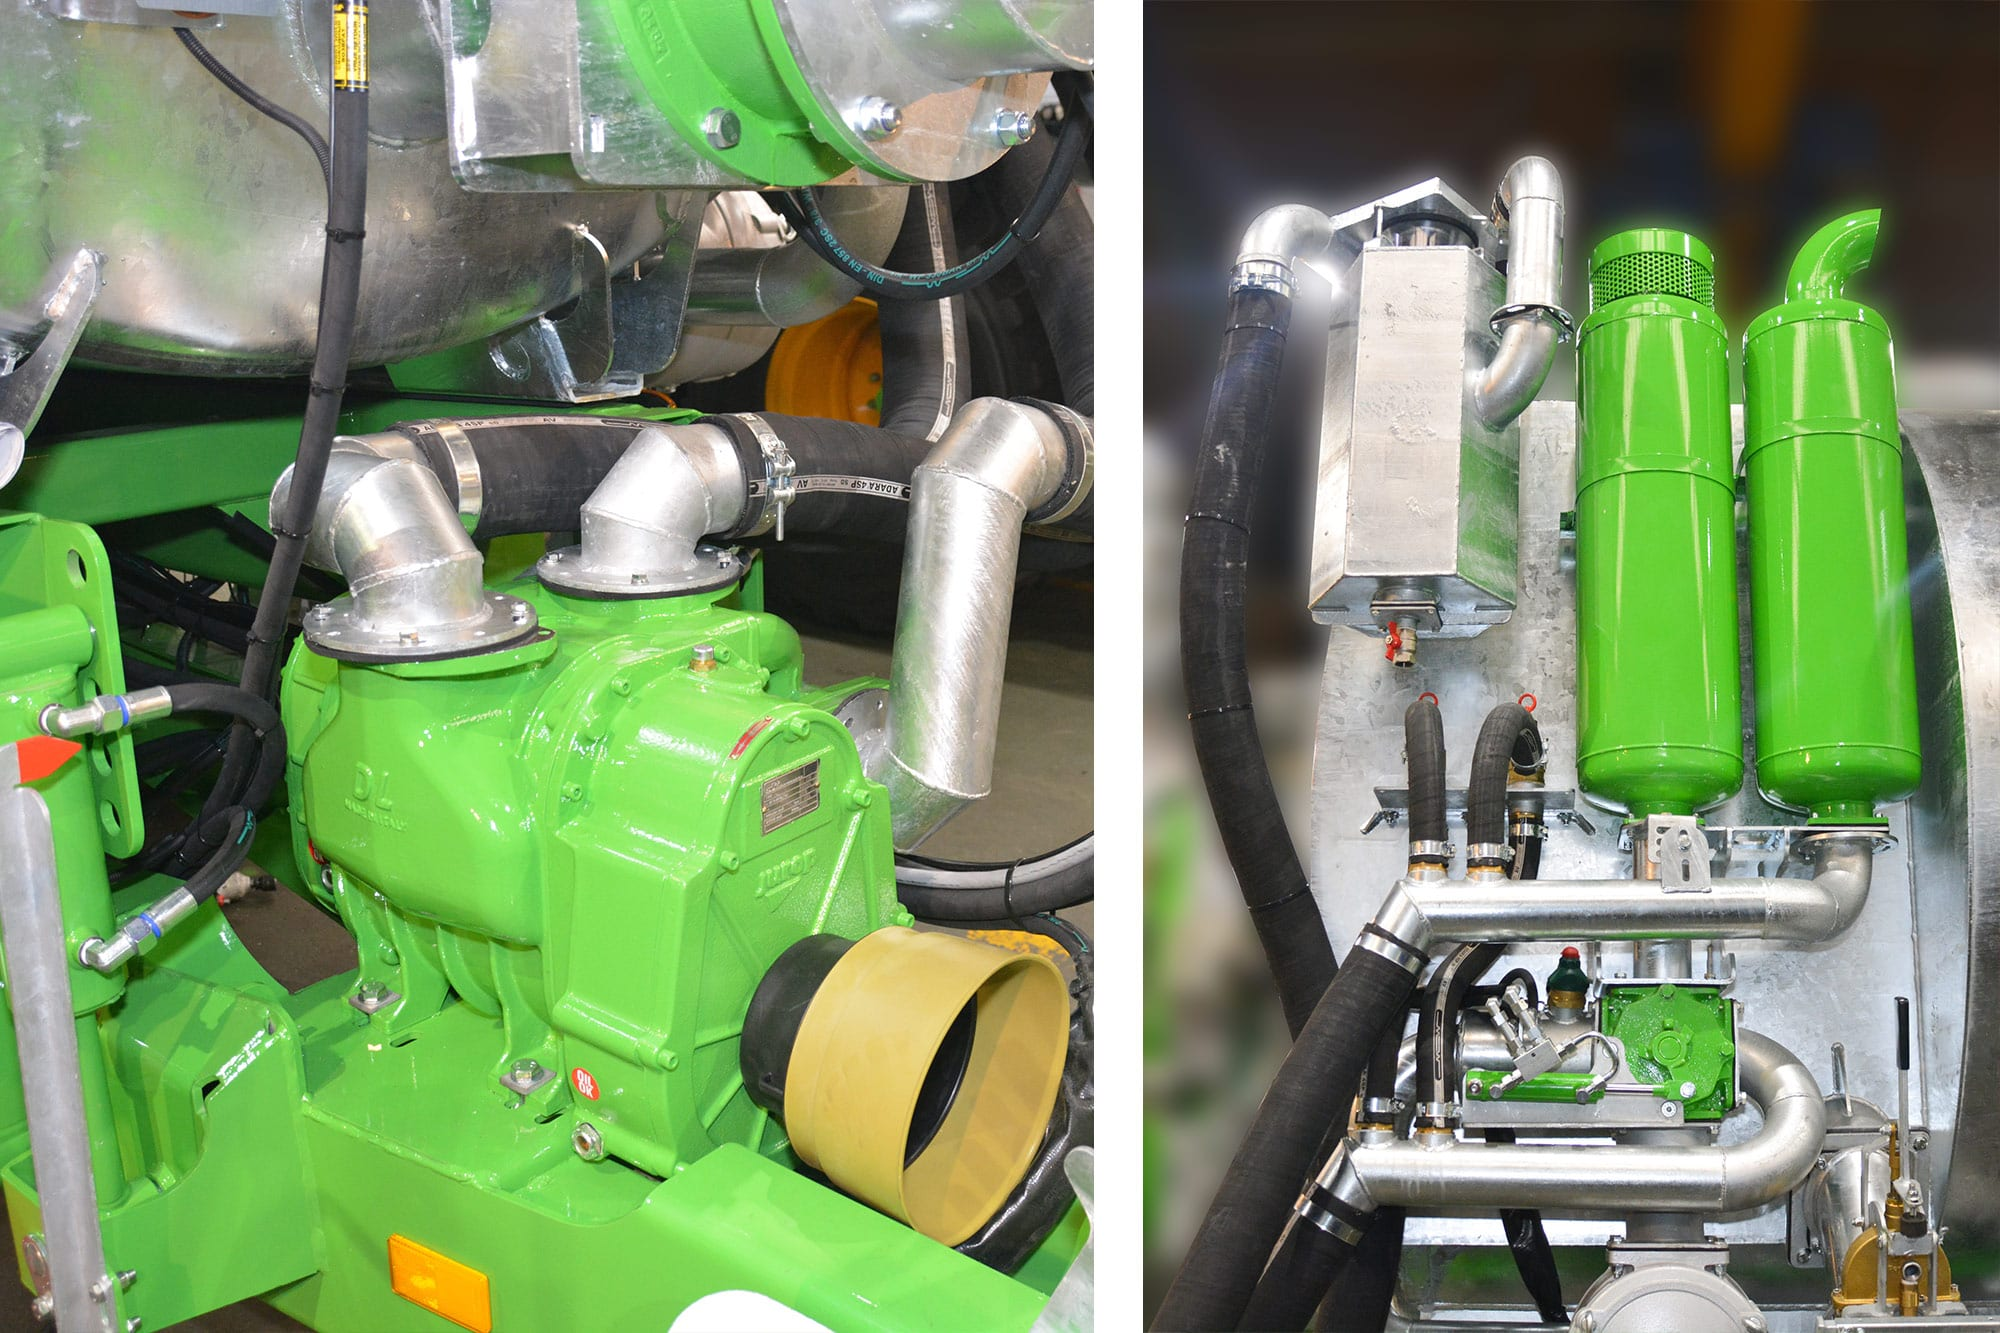 Slurry Spreader Pumping System Joskin Wiring Diagram Also Membrane Vacuum Pump On Use Case Gas Pumps Without Lubrication